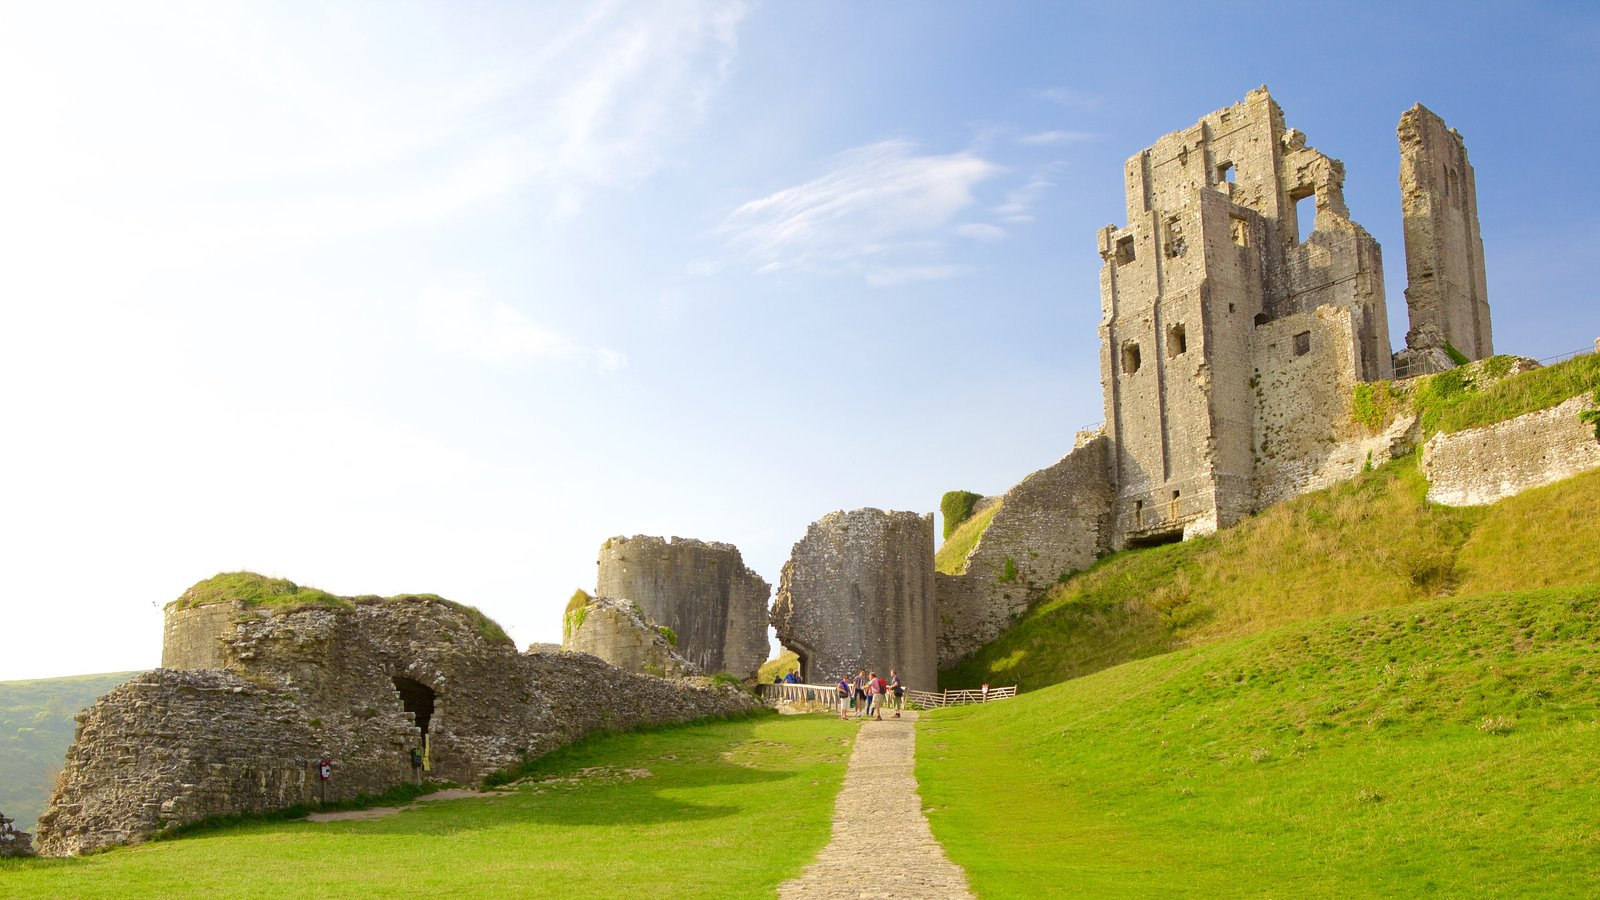 Corfe Castle featuring building ruins, tranquil scenes and heritage elements